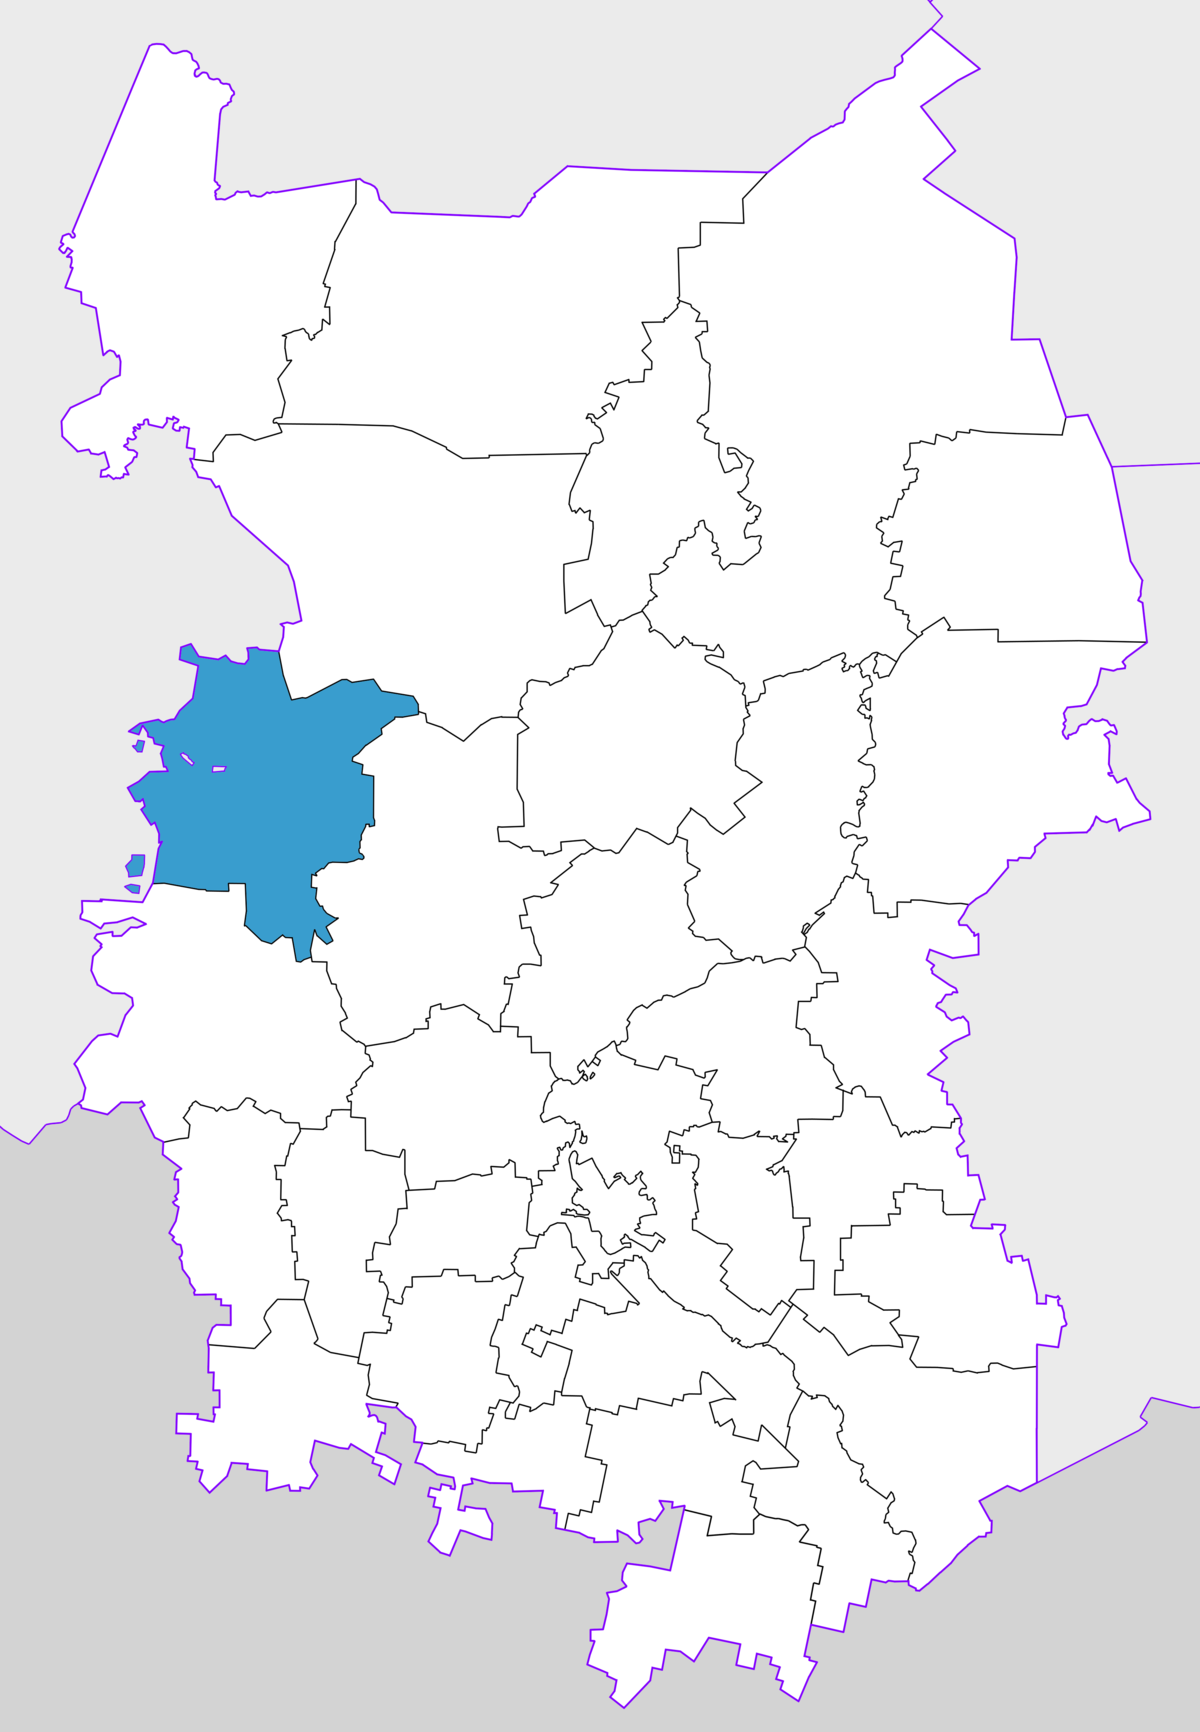 What is the federal district of Omsk, and where is it located 89